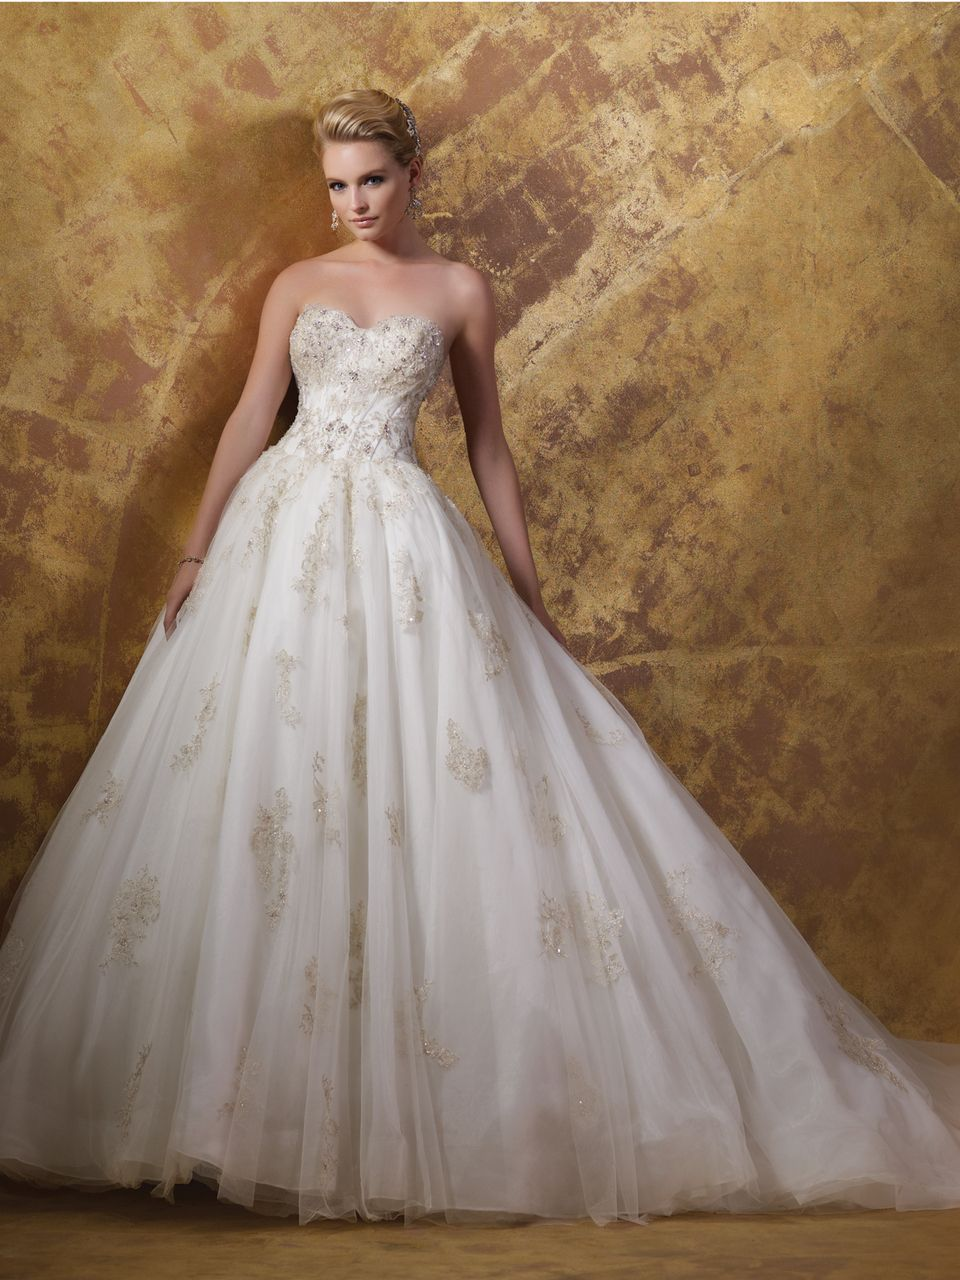 Bridals by lori james clifford 0127908 in store httpshop bridals by lori james clifford 0127908 in store httpshop strapless wedding dressesbeach ombrellifo Choice Image